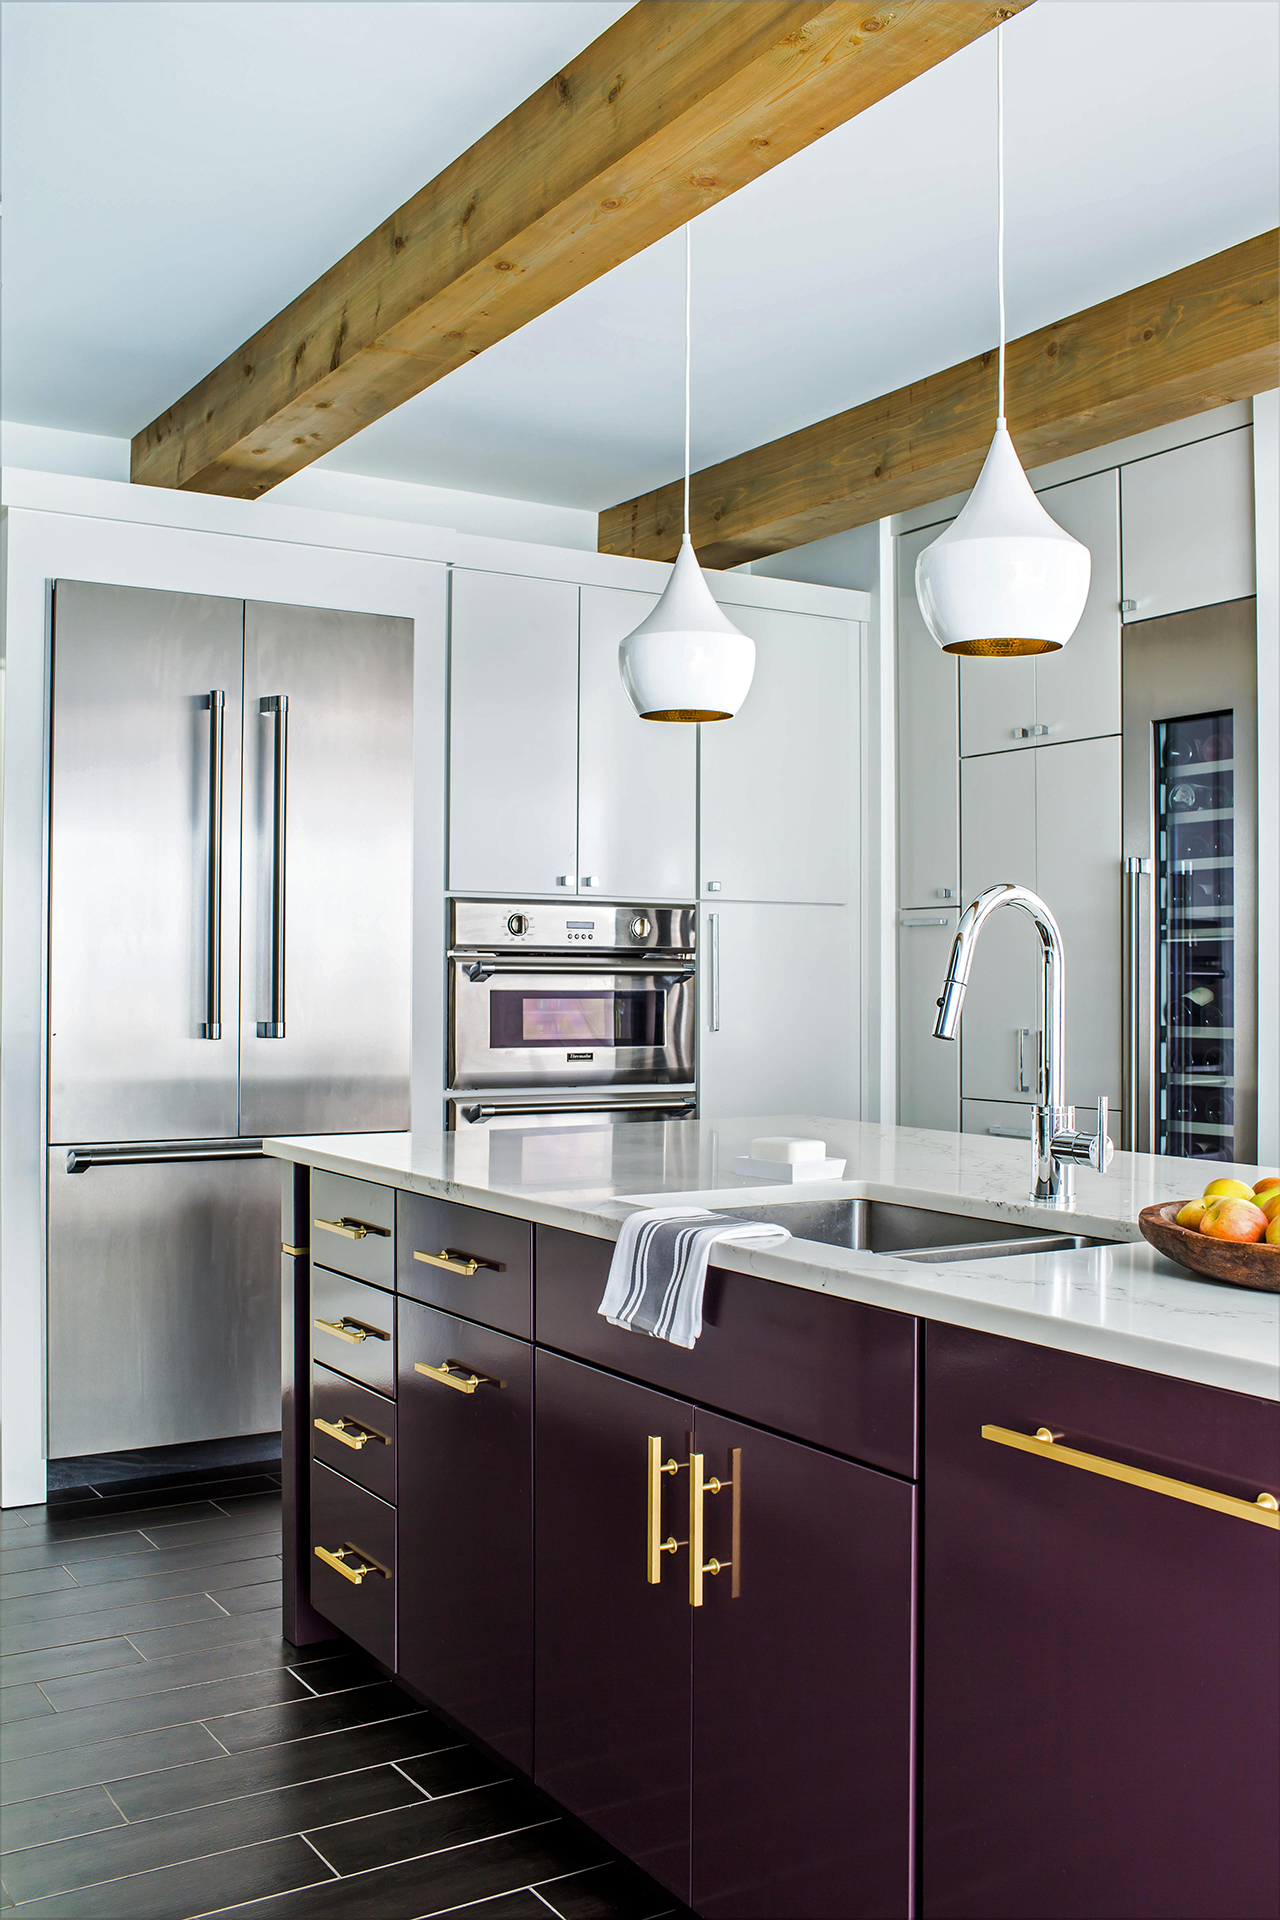 high ceiling white and gray kitchen with eggplant cabinets